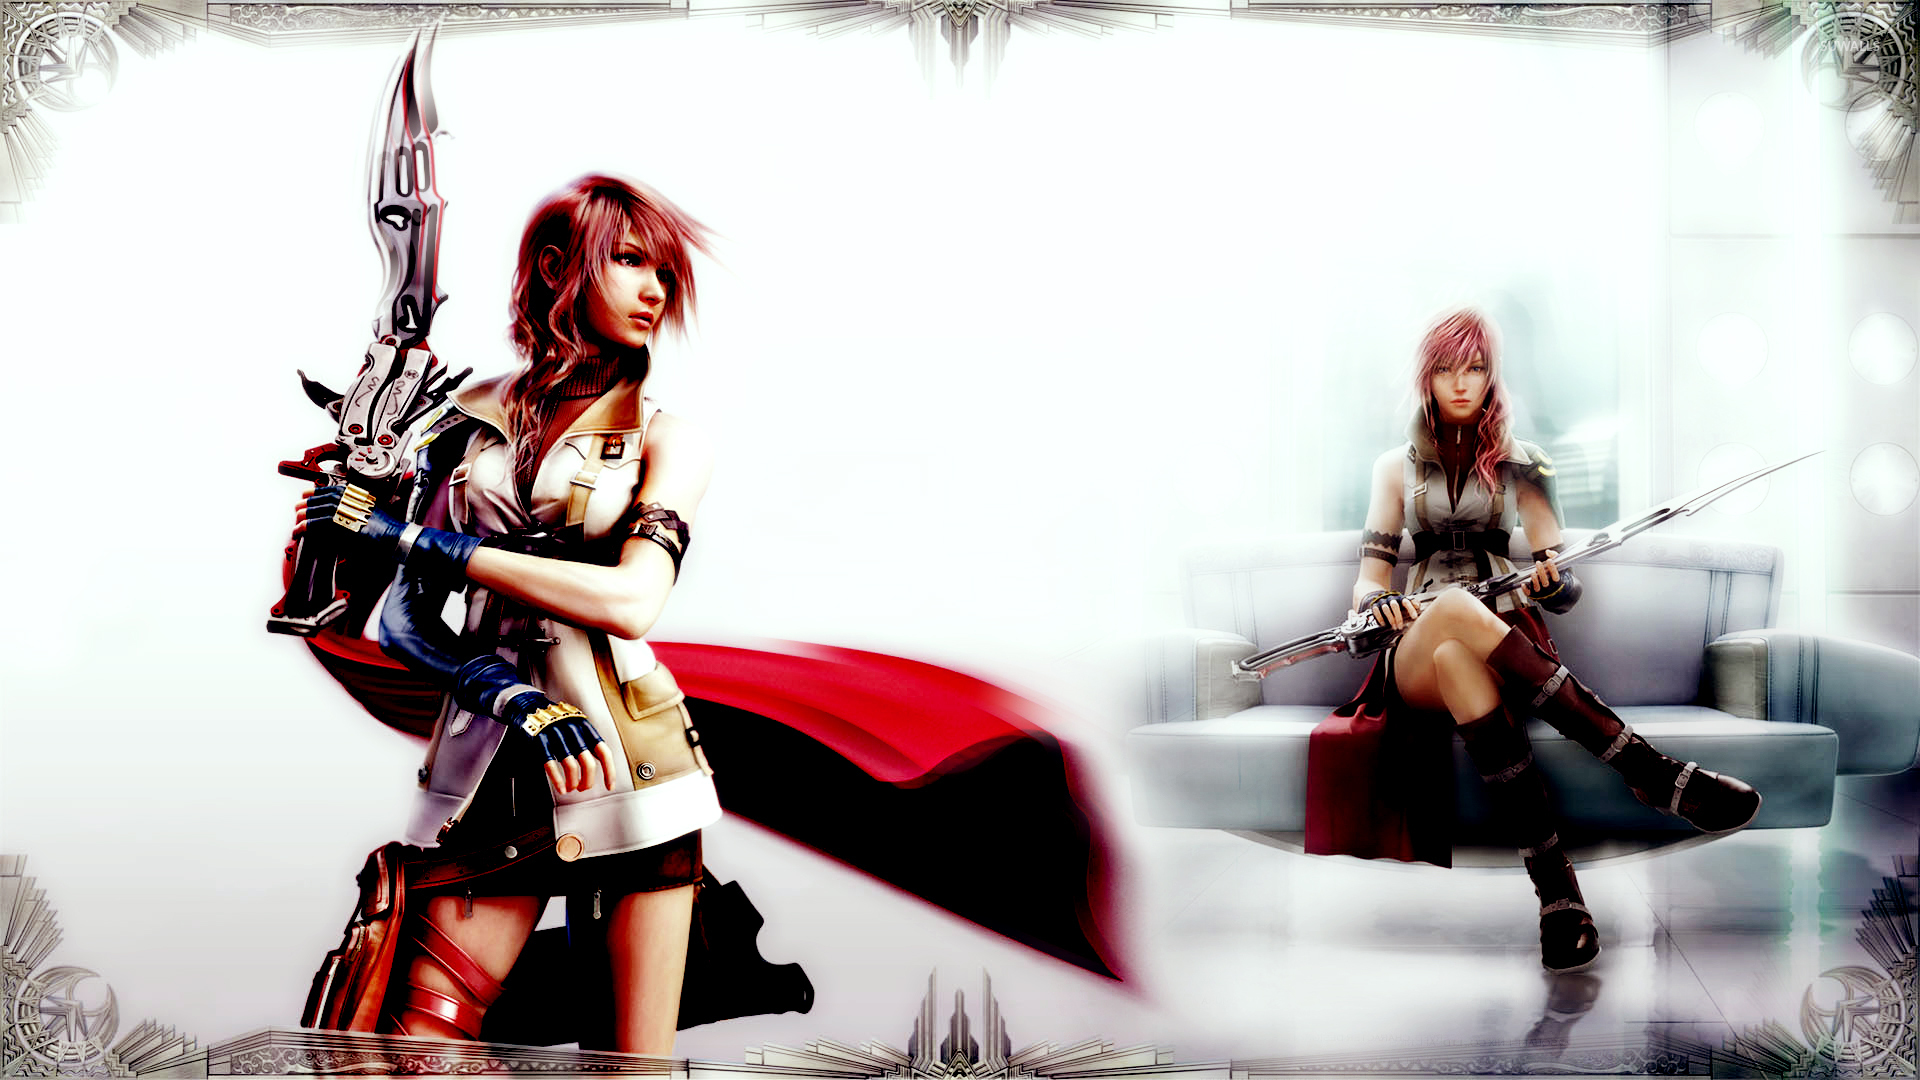 Lightning Final Fantasy Xiii 8 Wallpaper Game Wallpapers 4675